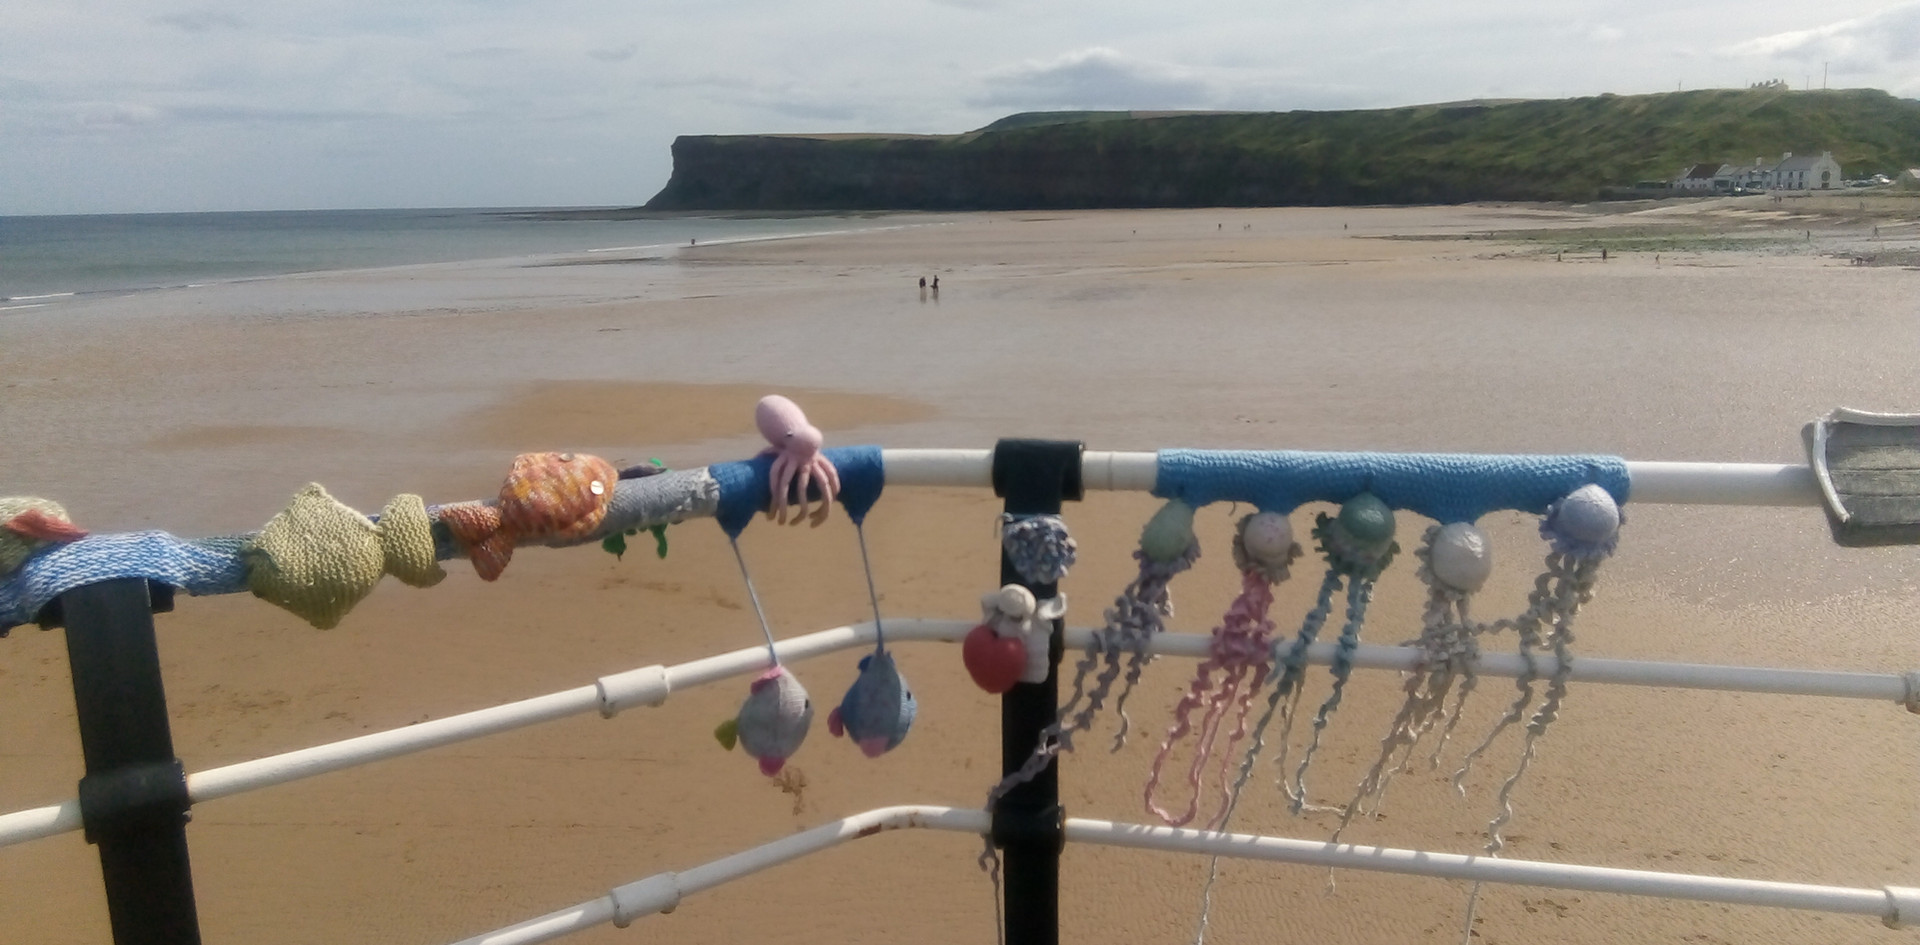 Knitted decorations on the pier